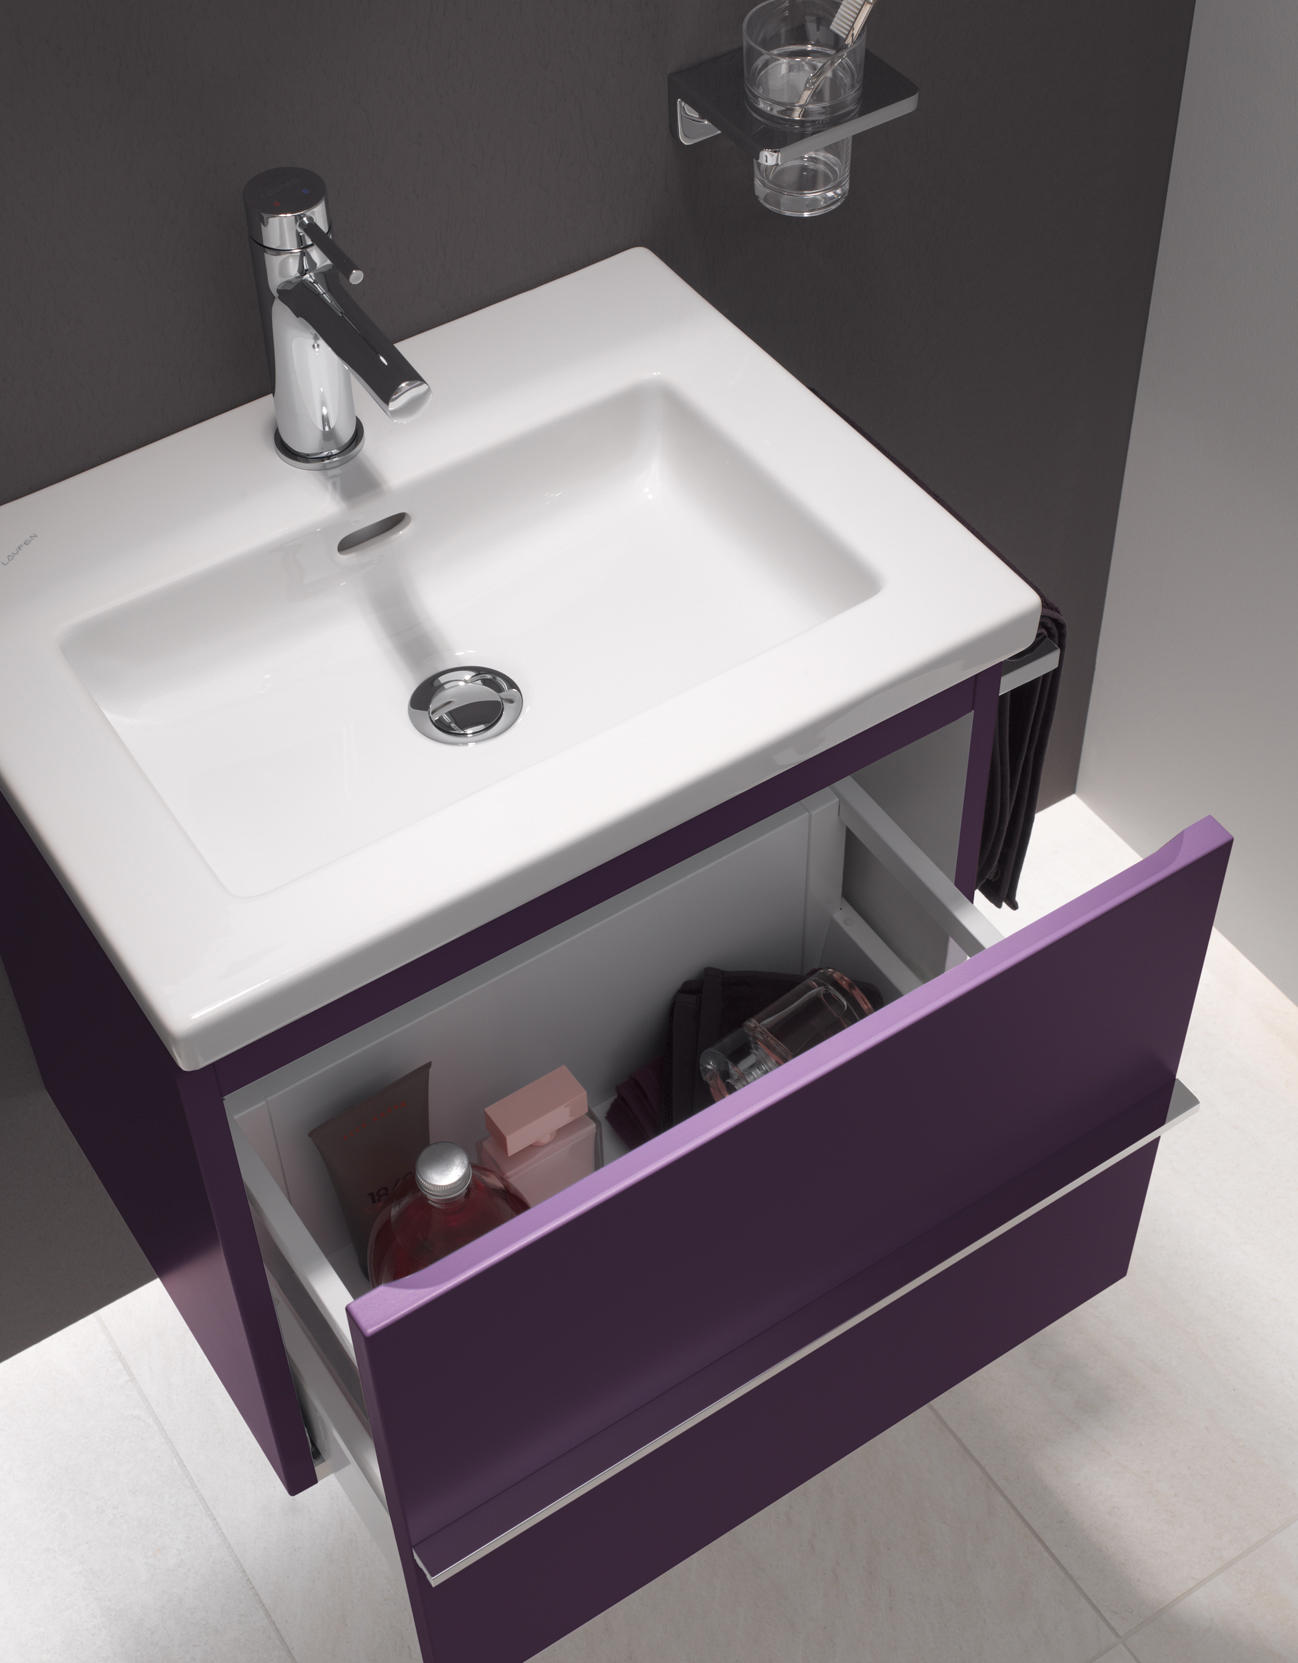 laufen pro s vanity unit vanity units from laufen. Black Bedroom Furniture Sets. Home Design Ideas